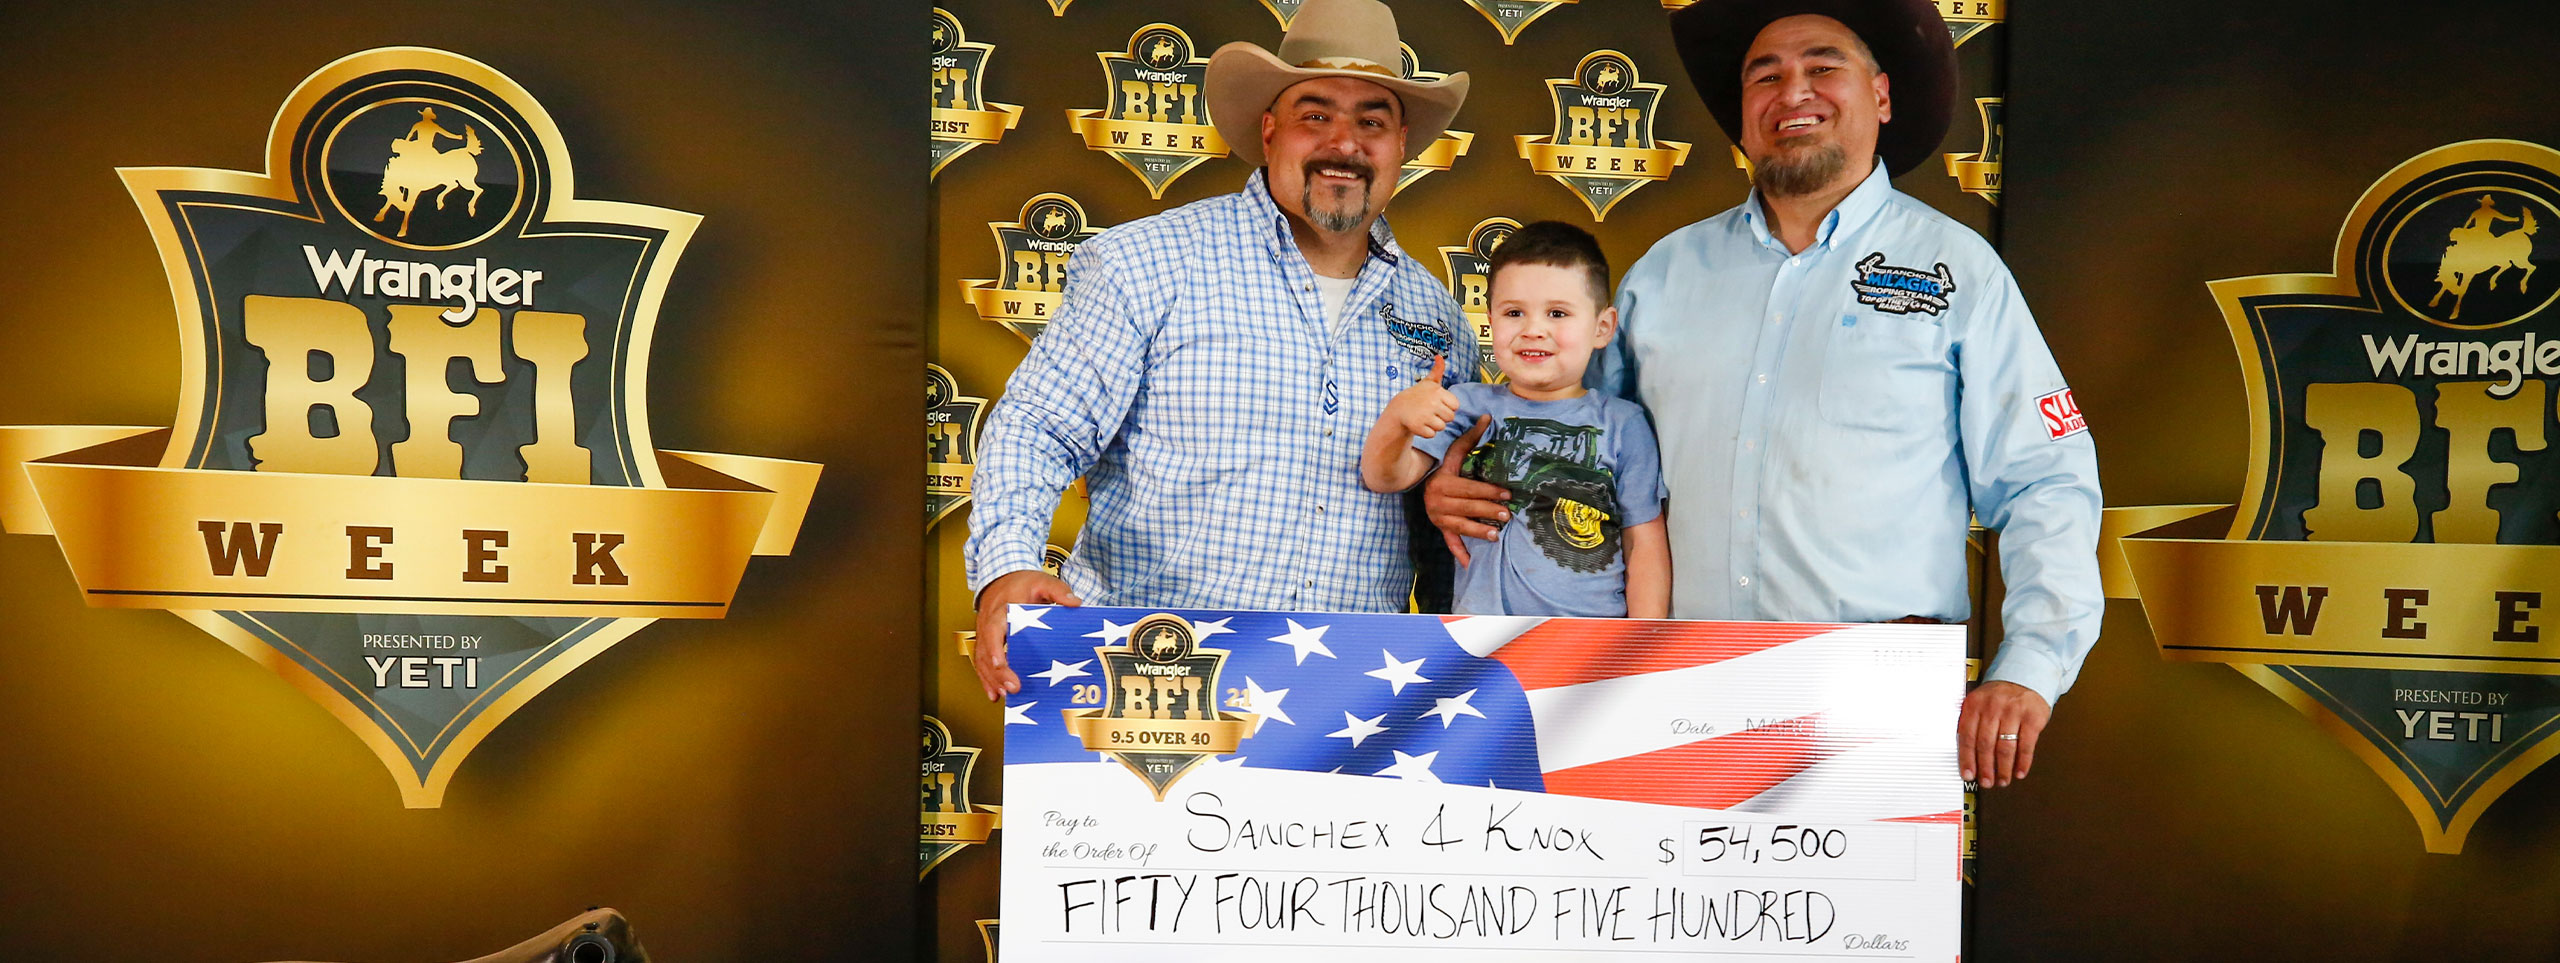 Complete Results From The 2021 BFI Week 9.5 Over 40 Roping